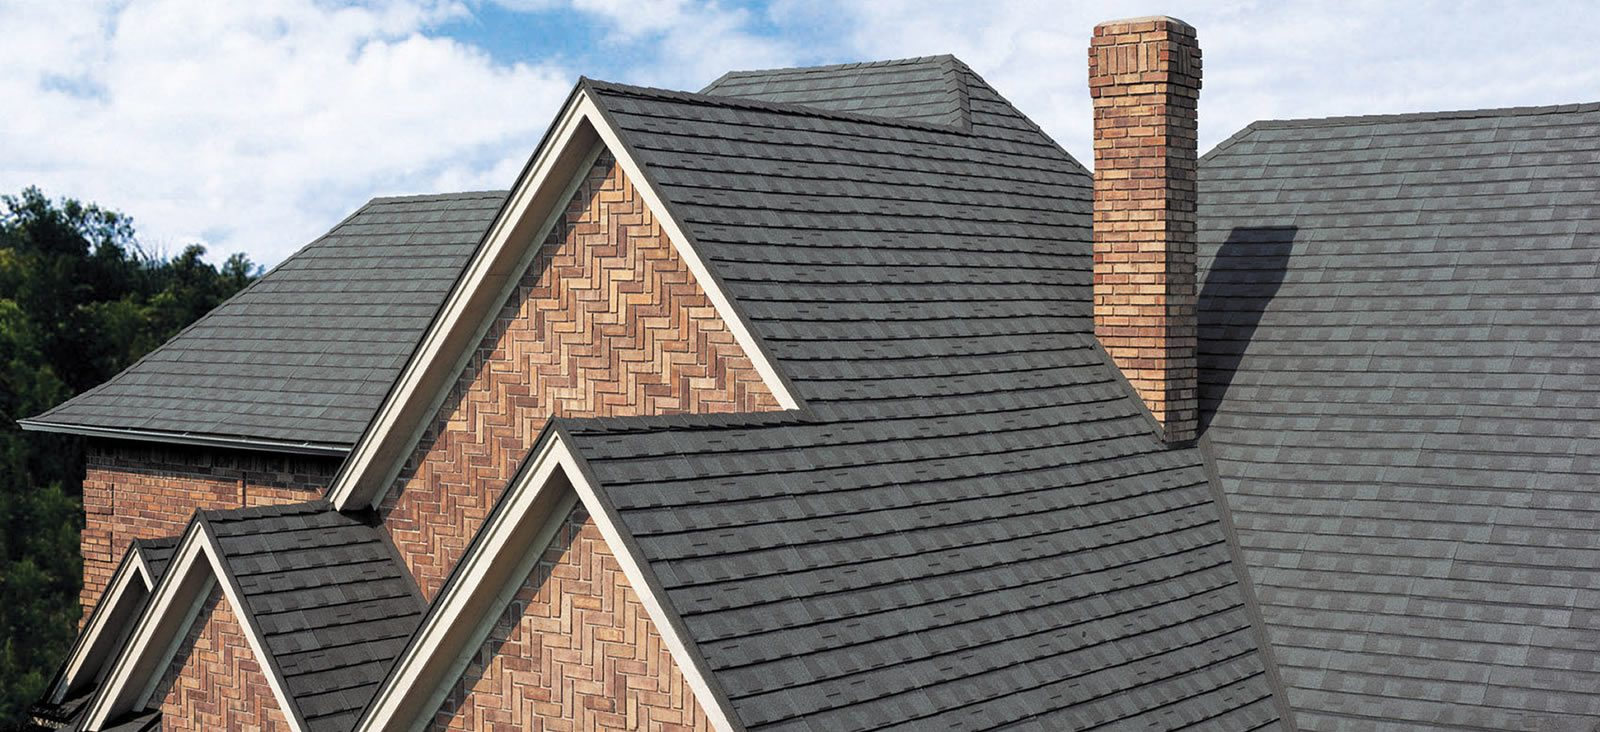 metal tile, Indiana, Indianapolis, IN, roofing, roof, roofers, repair, storm, leak, water, damage, rain, bright, energy efficient